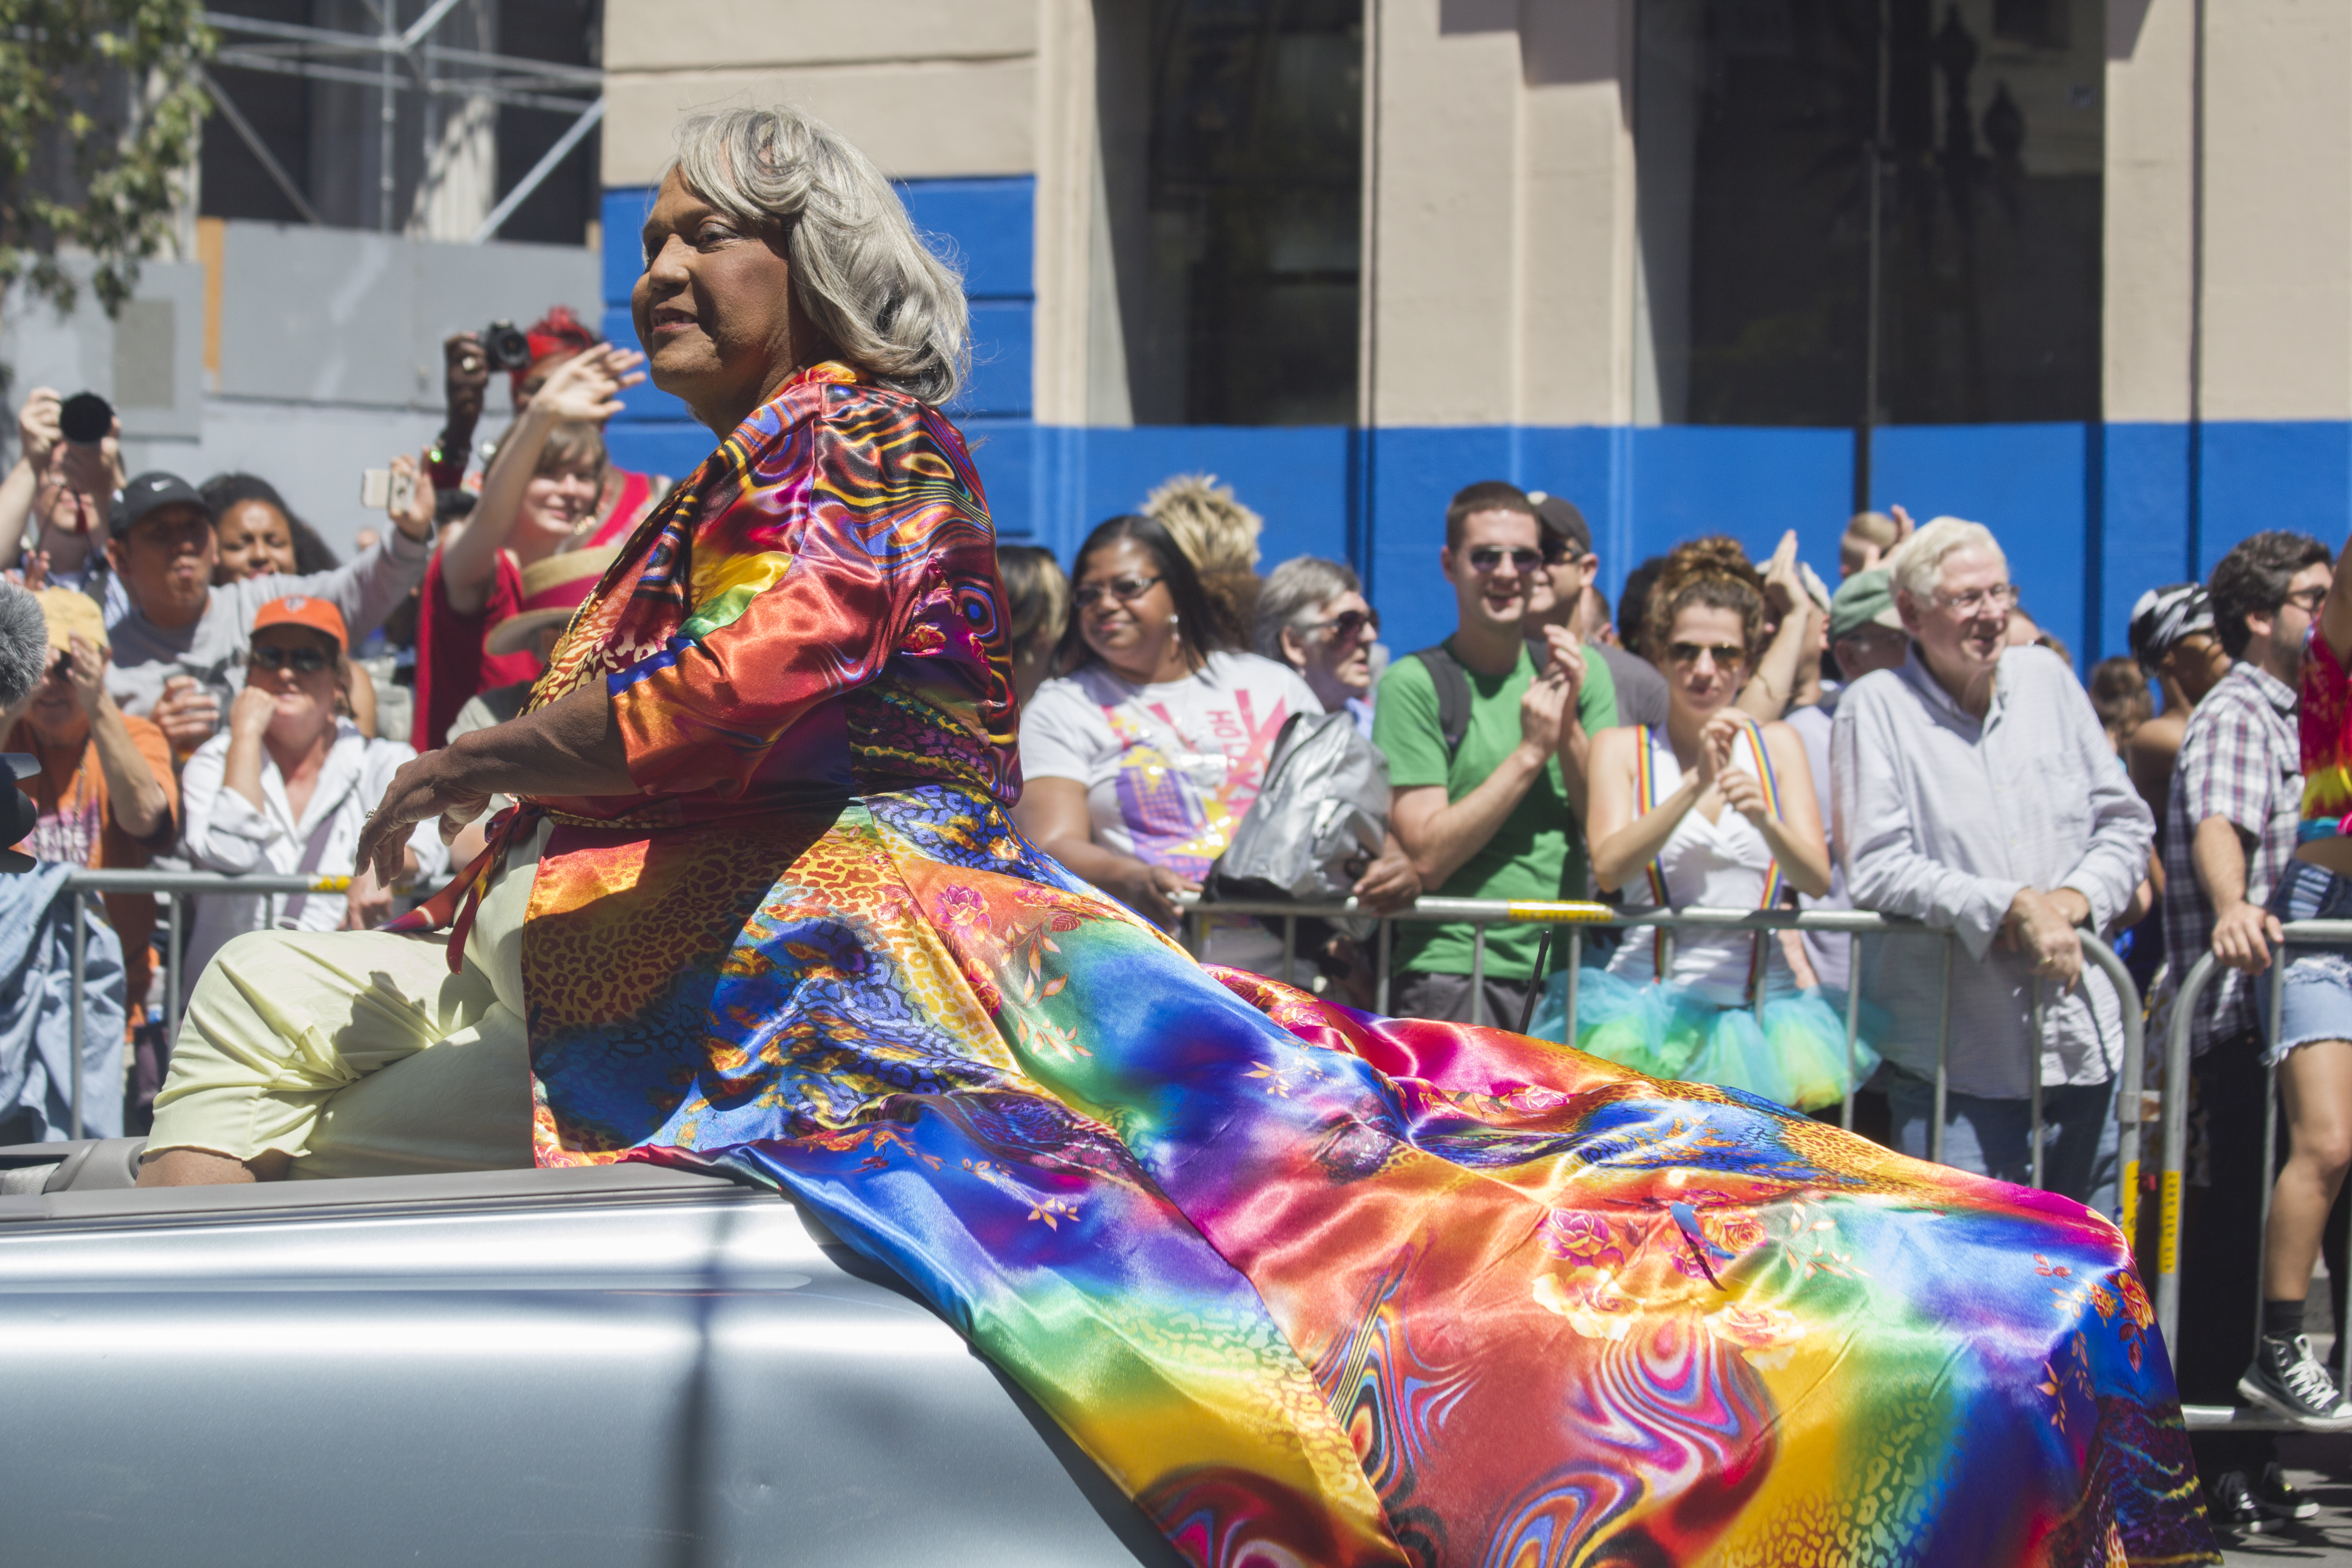 Miss_Major_in_Pride_2014_SF People in History: The Stonewall Rioters